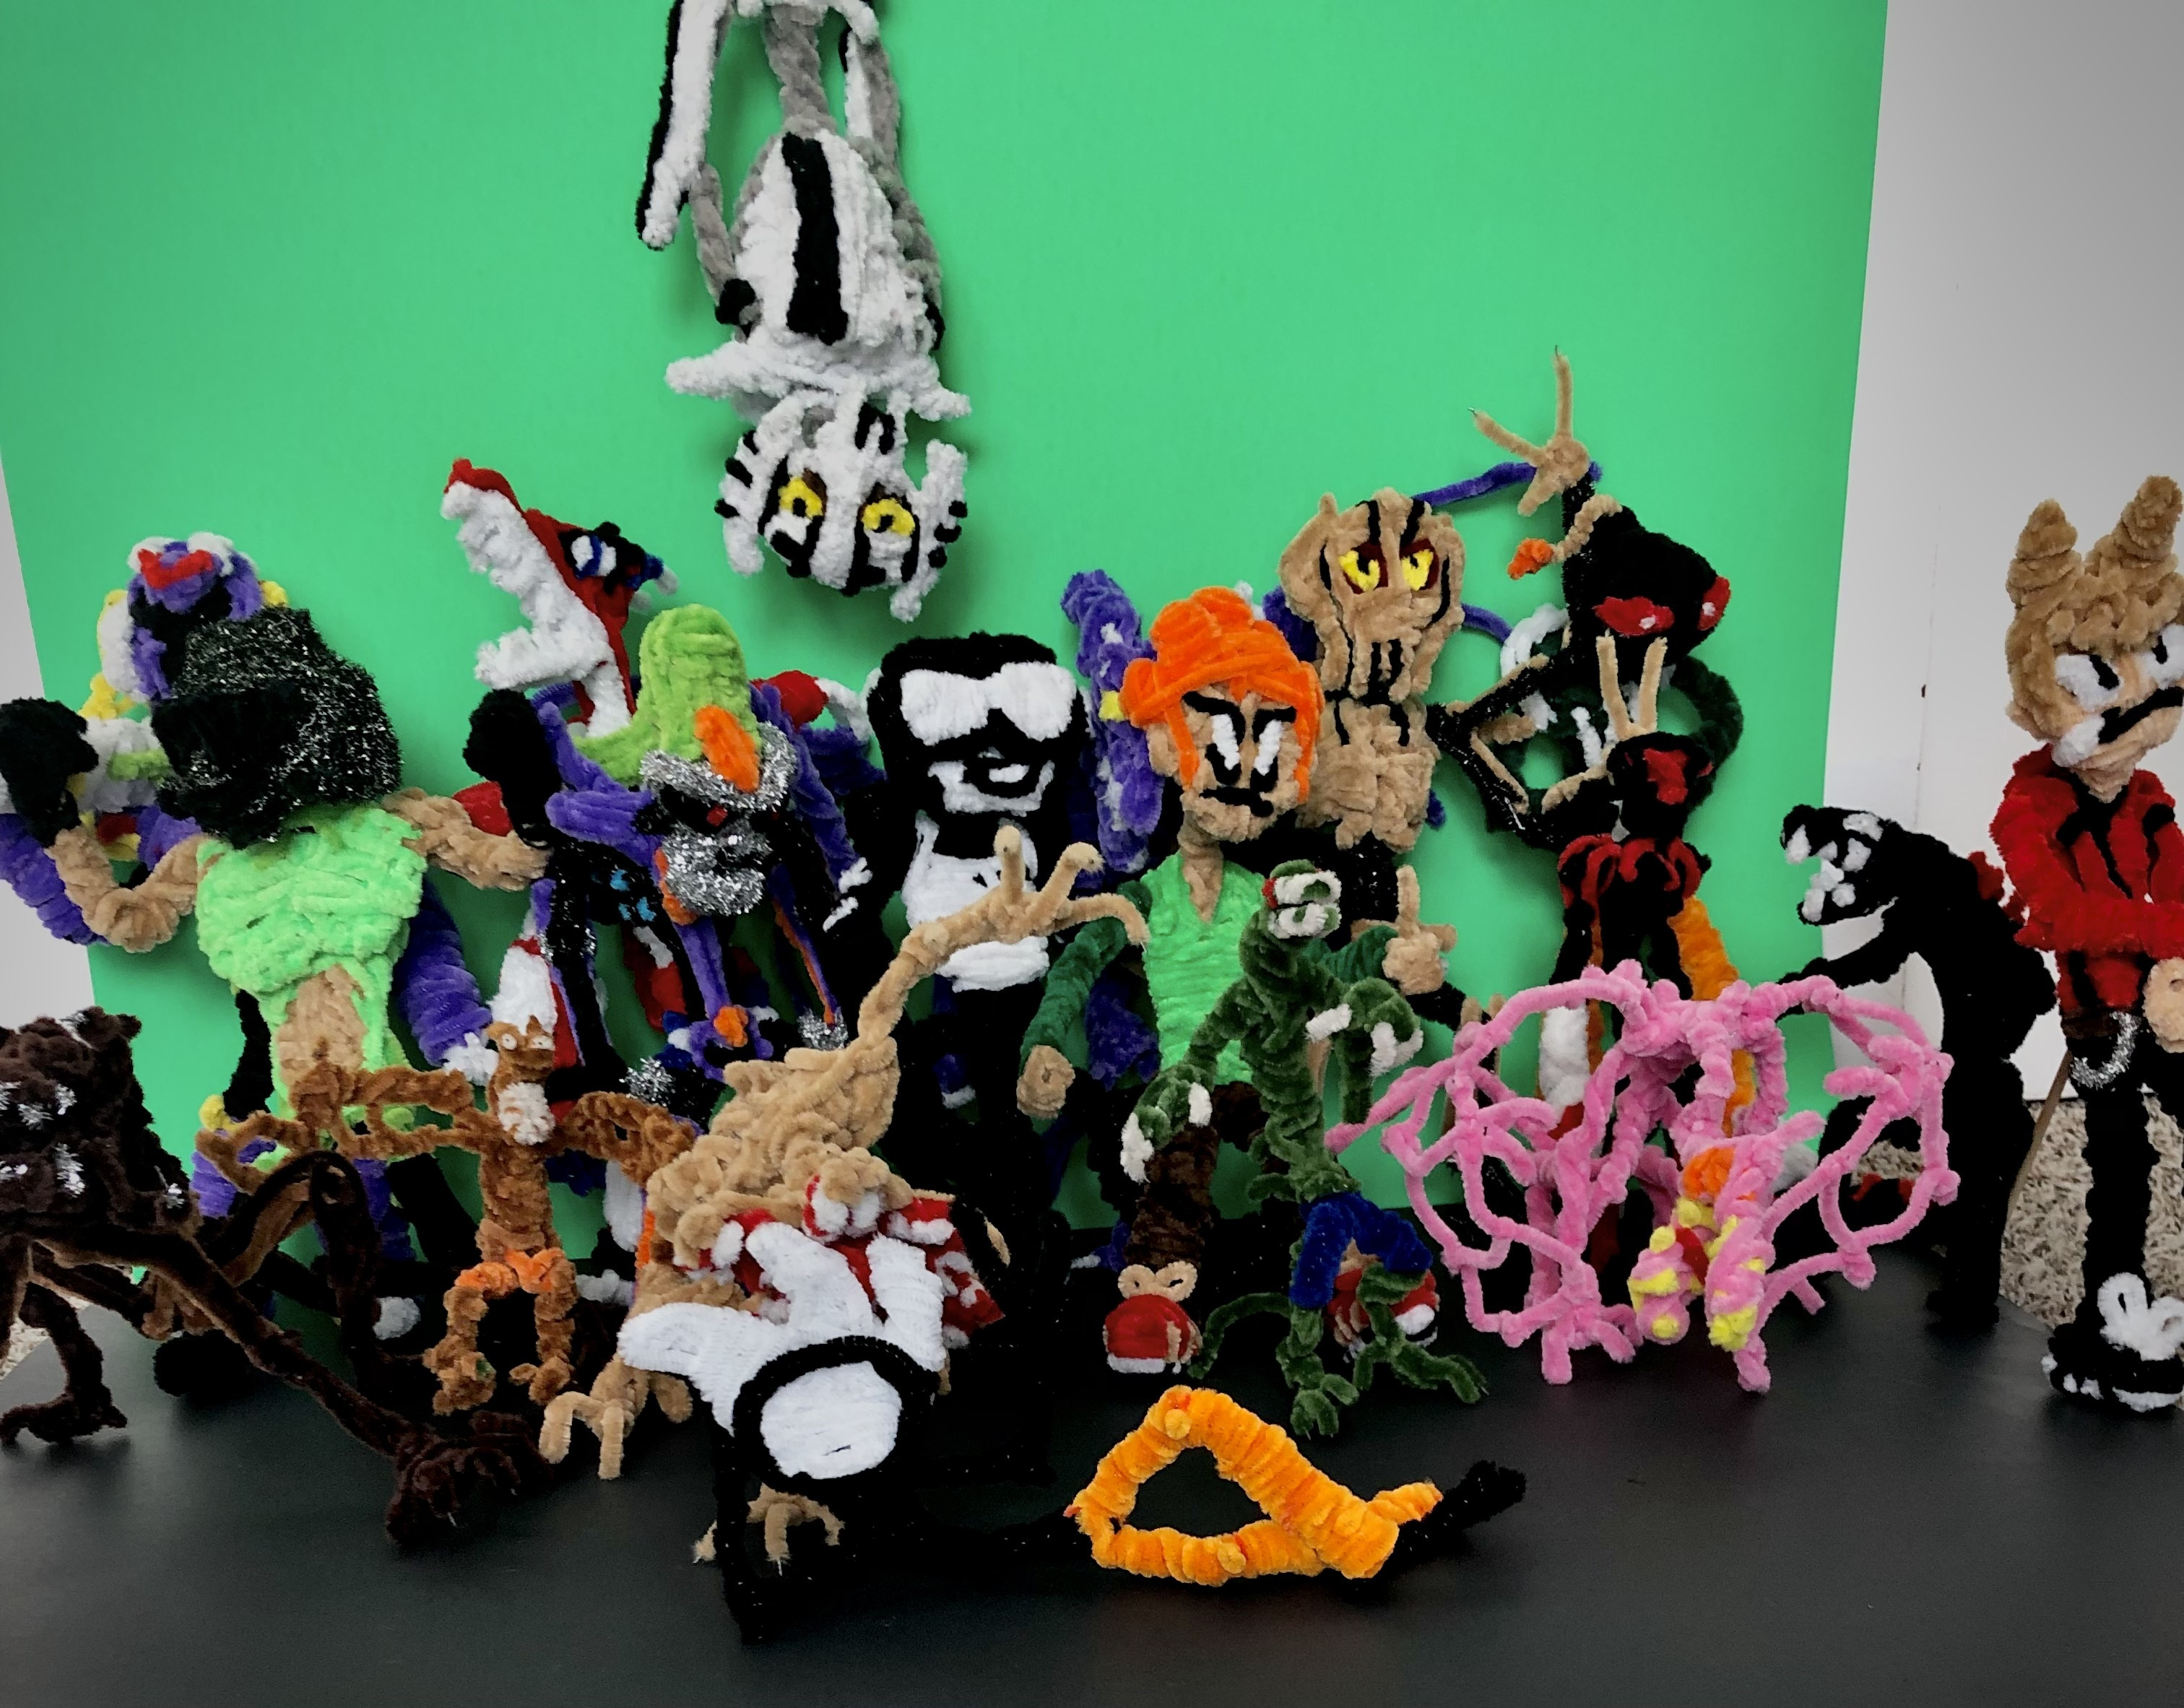 Pipe cleaner Family photo (7-17-21)